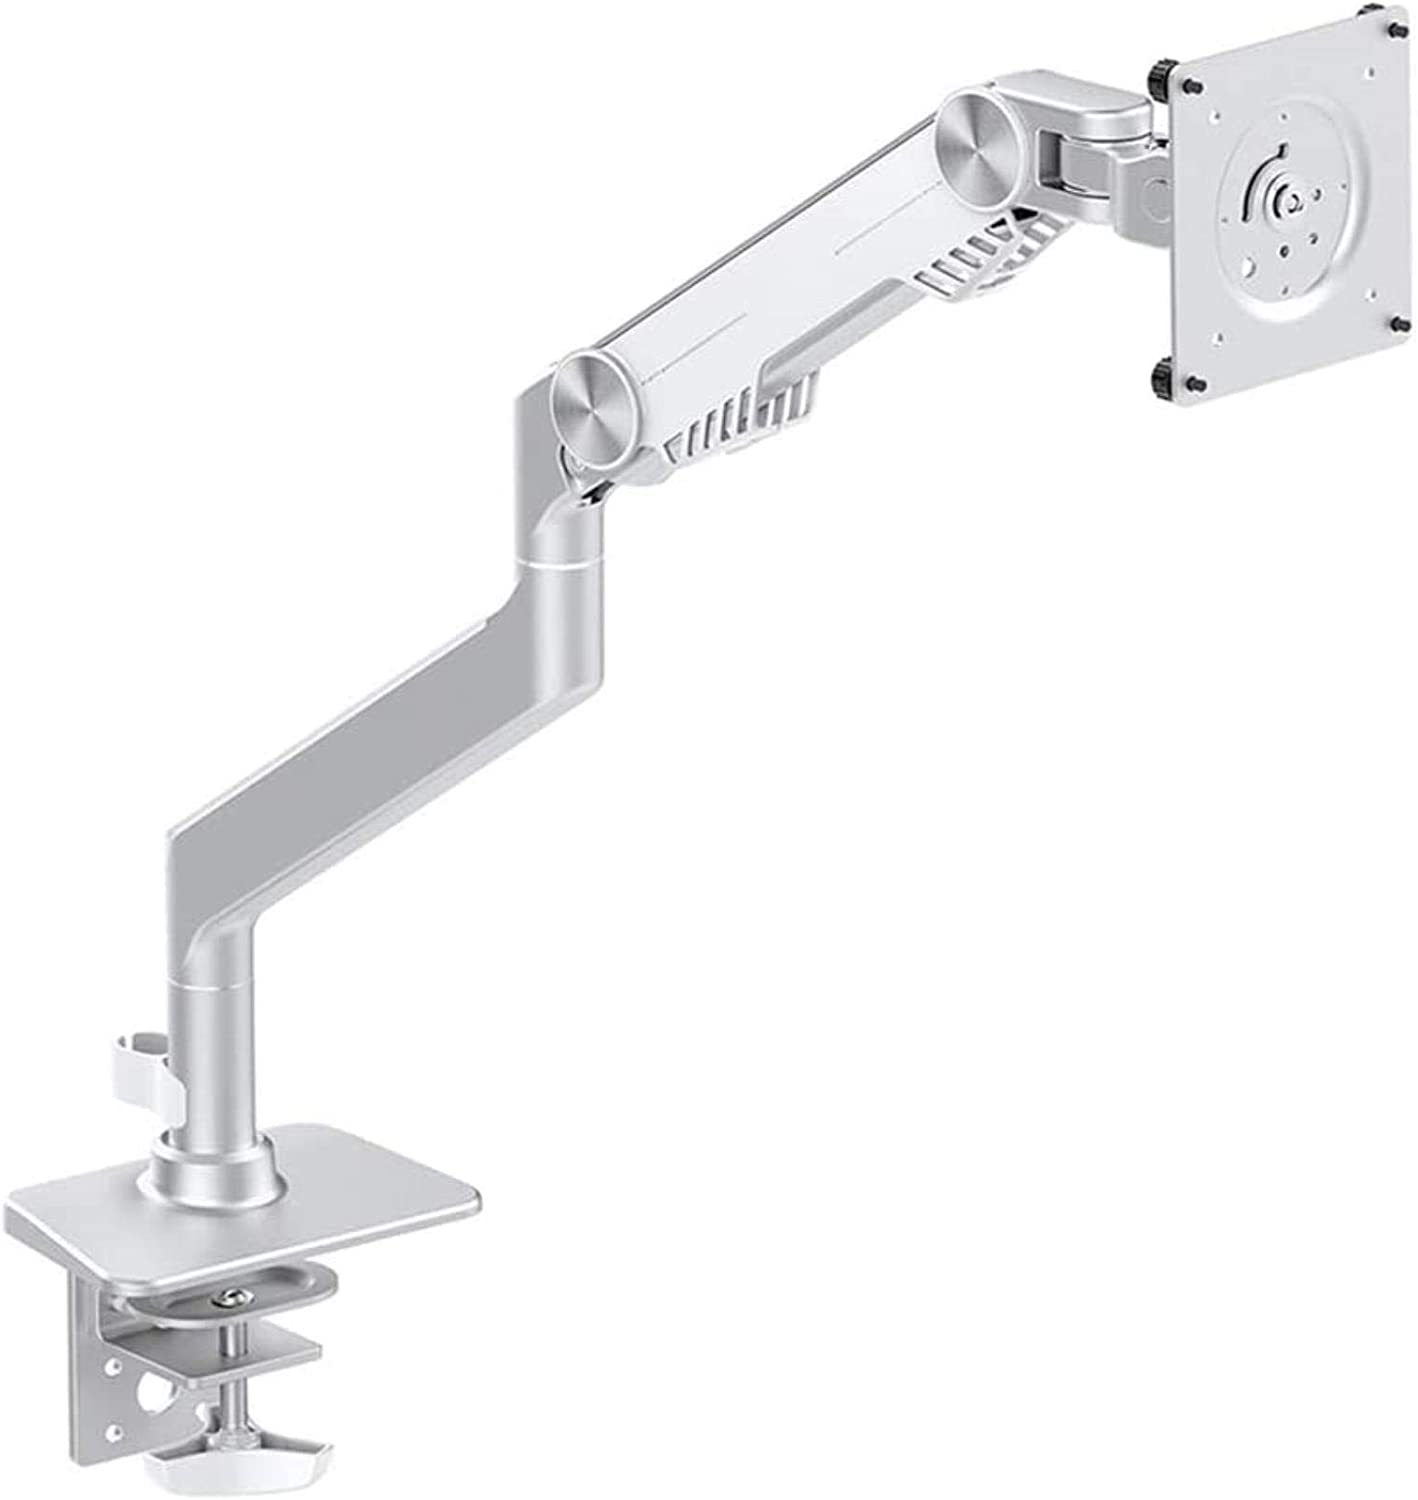 Atlanta Mall Max 43% OFF Monitor stand Mount Stand Single Gas Spring Arm